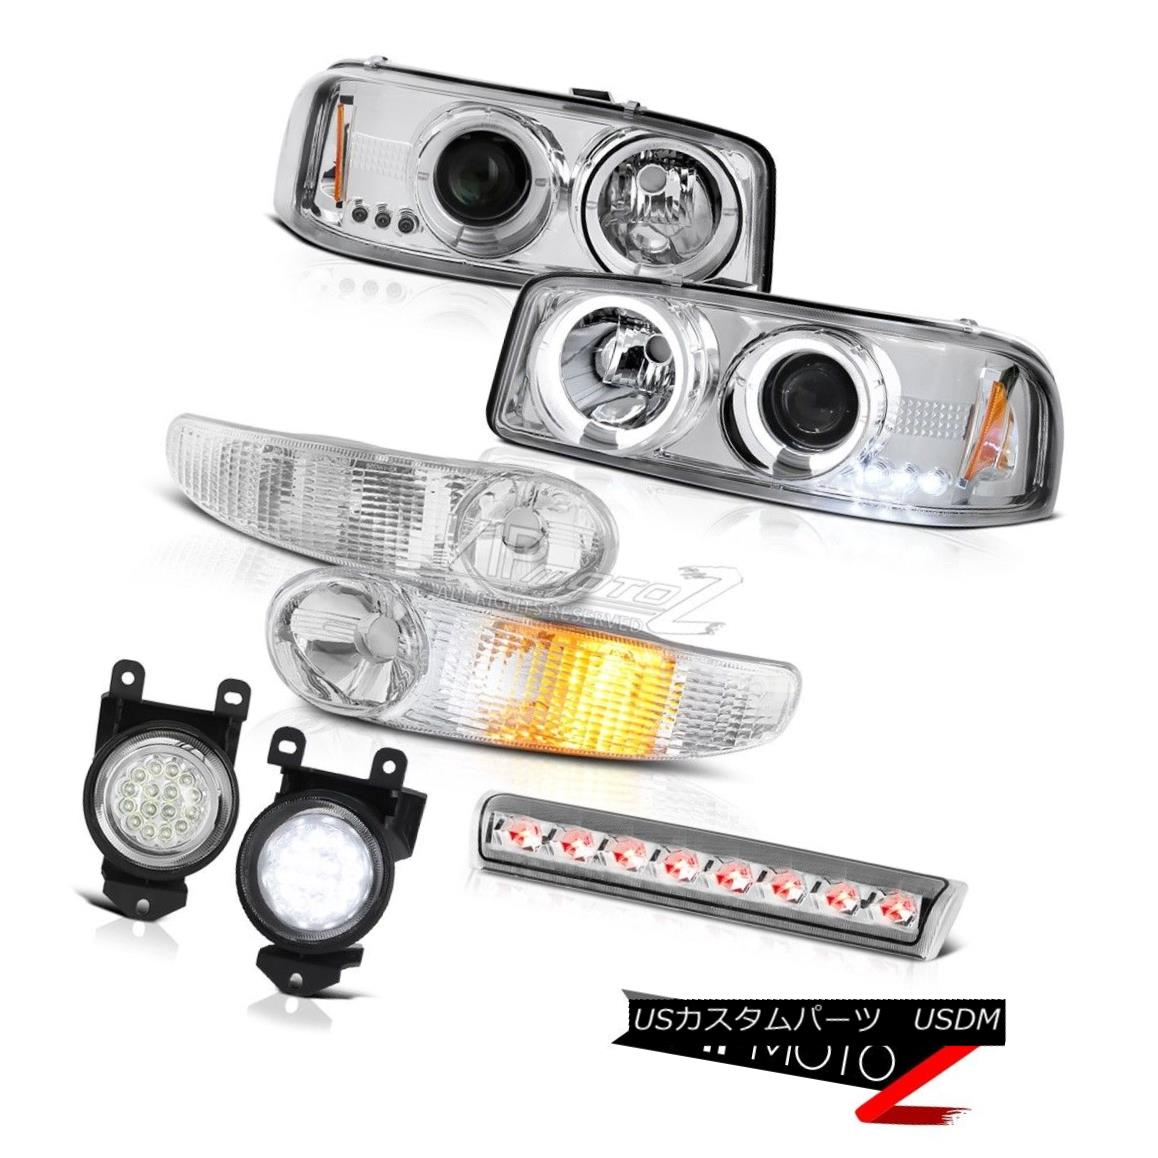 ヘッドライト GMC Denali Halo Headlamp Smoke Signal Bumper 01-06 Yukon Foglight Brake Lamp LED GMC Denali Haloヘッドランプスモークシグナルバンパー01-06 Yukon FoglightブレーキランプLED